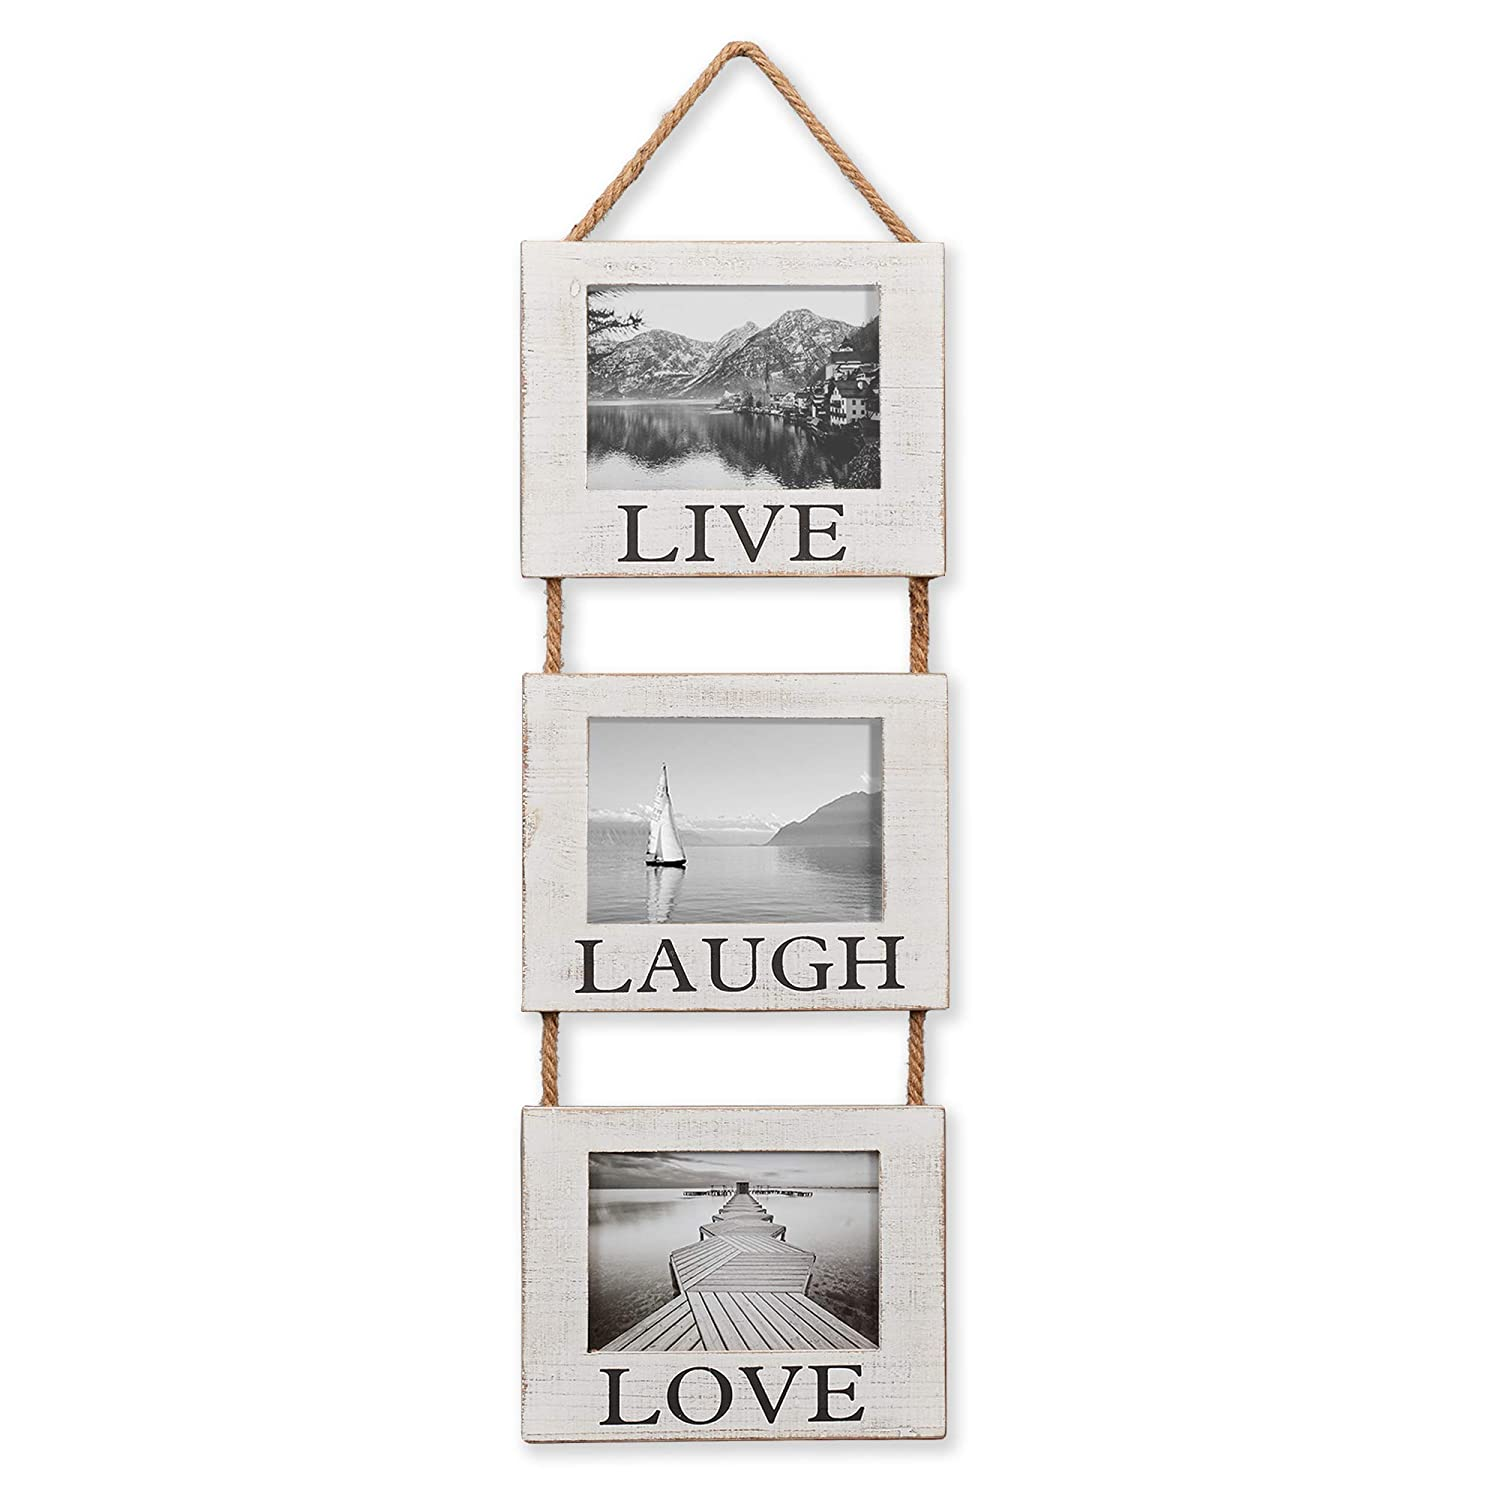 "Barnyard Designs Rustic Hanging Picture Frame Set, Featuring 'Live', 'Laugh' and 'Love', Farmhouse Country Photo Frame Decor Set - (3) 5"" x 7"" Frames on Hanging Rope, 27"" x 9.5"""